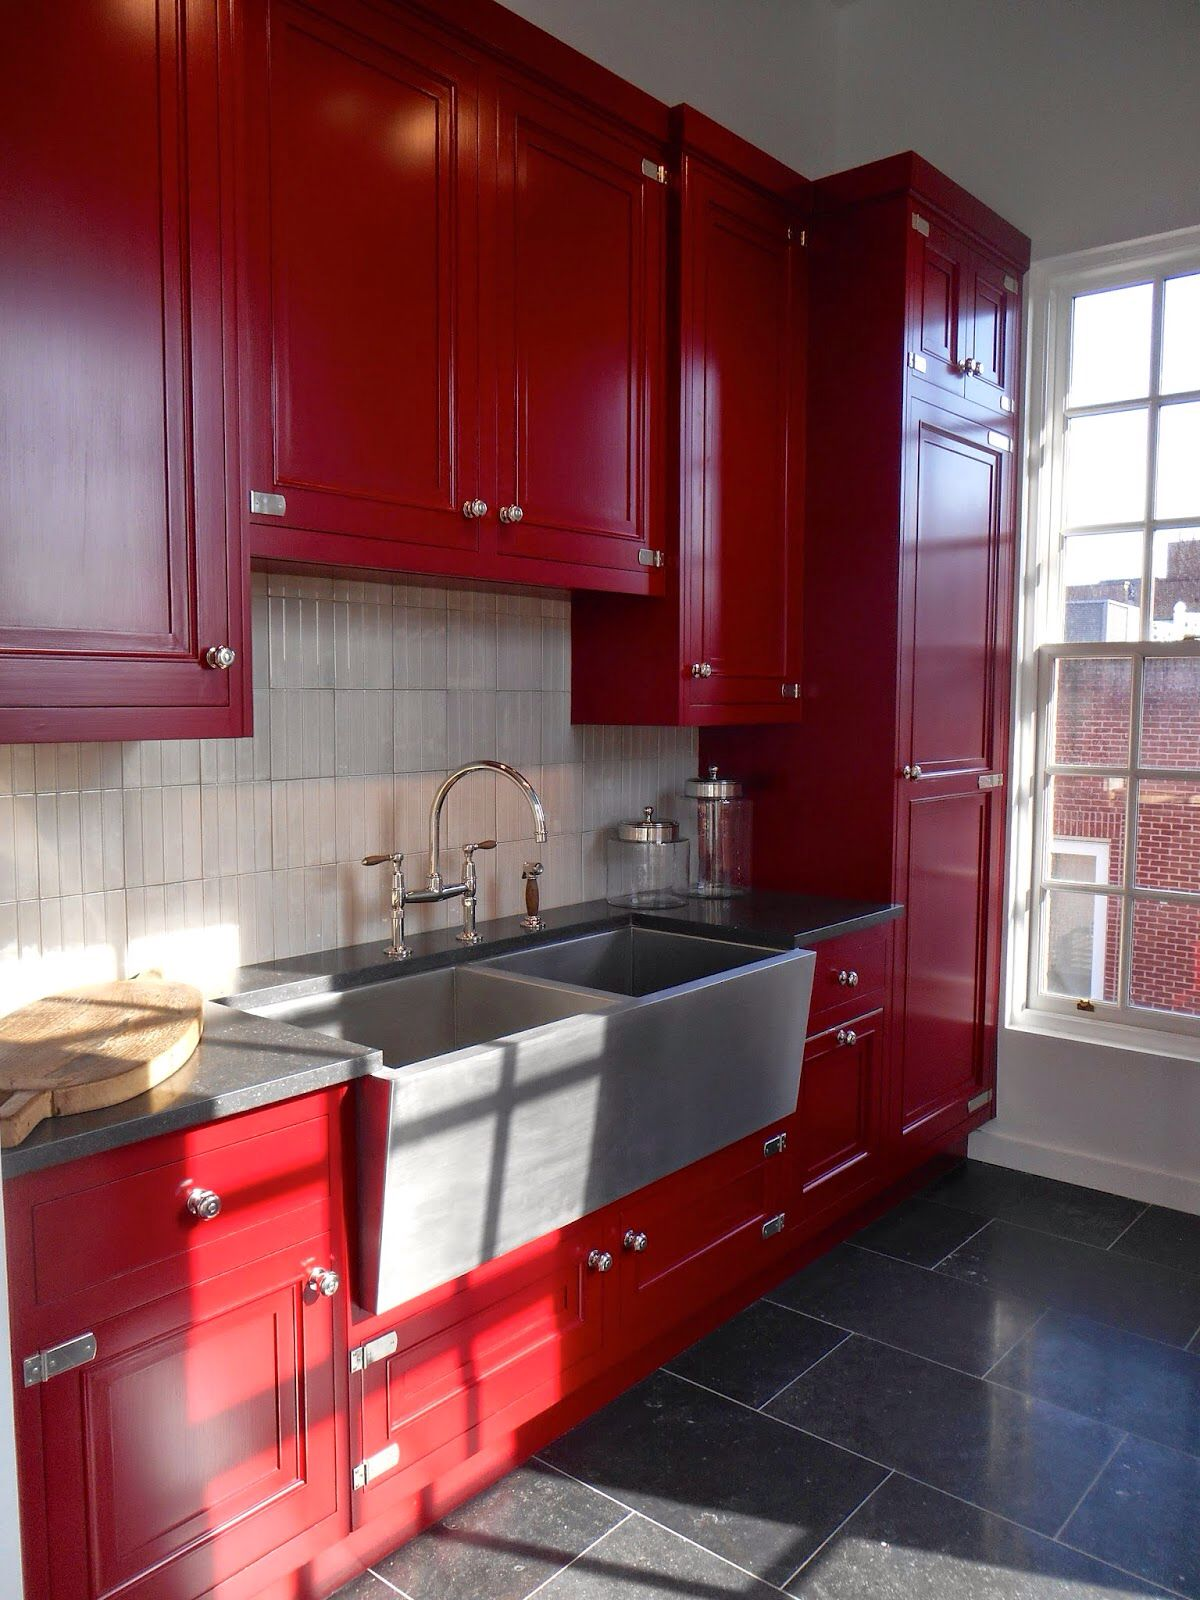 Laundry room imagine red appliances across